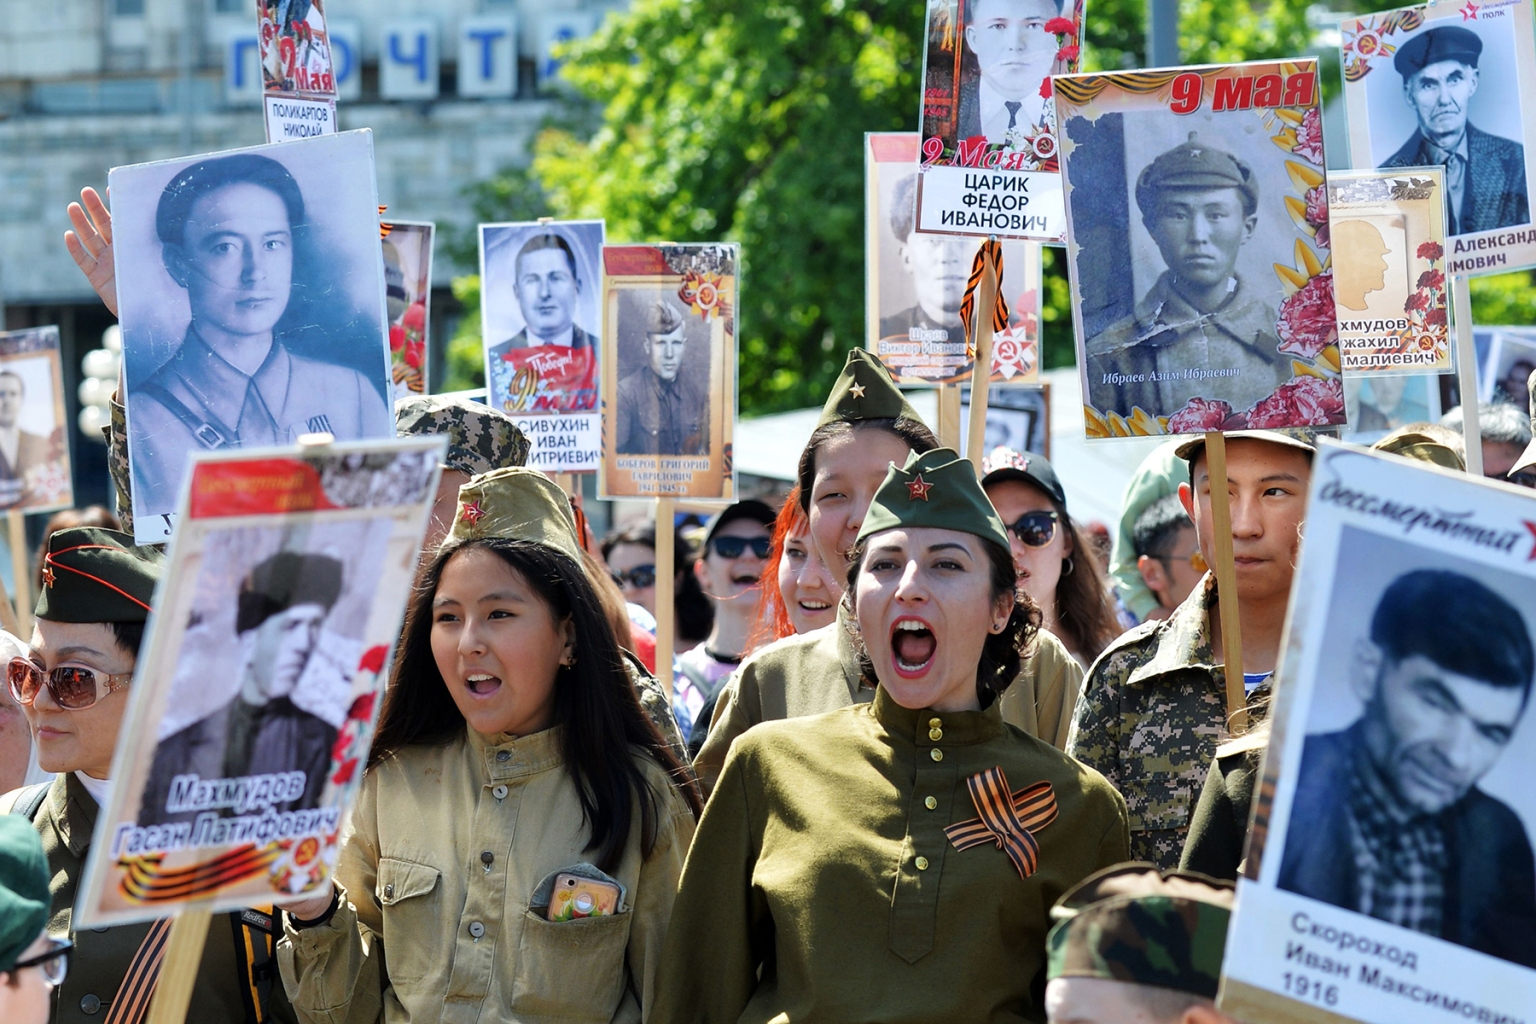 People carry portraits of World War II soldiers during the Immortal Regiment march in Bishkek, Kyrgyzstan, on May 9. Kyrgyzstan and other ex-Soviet republics marked the 73rd anniversary of the Soviet Union's victory over Nazi Germany. VYACHESLAV OSELEDKO/AFP/Getty Images